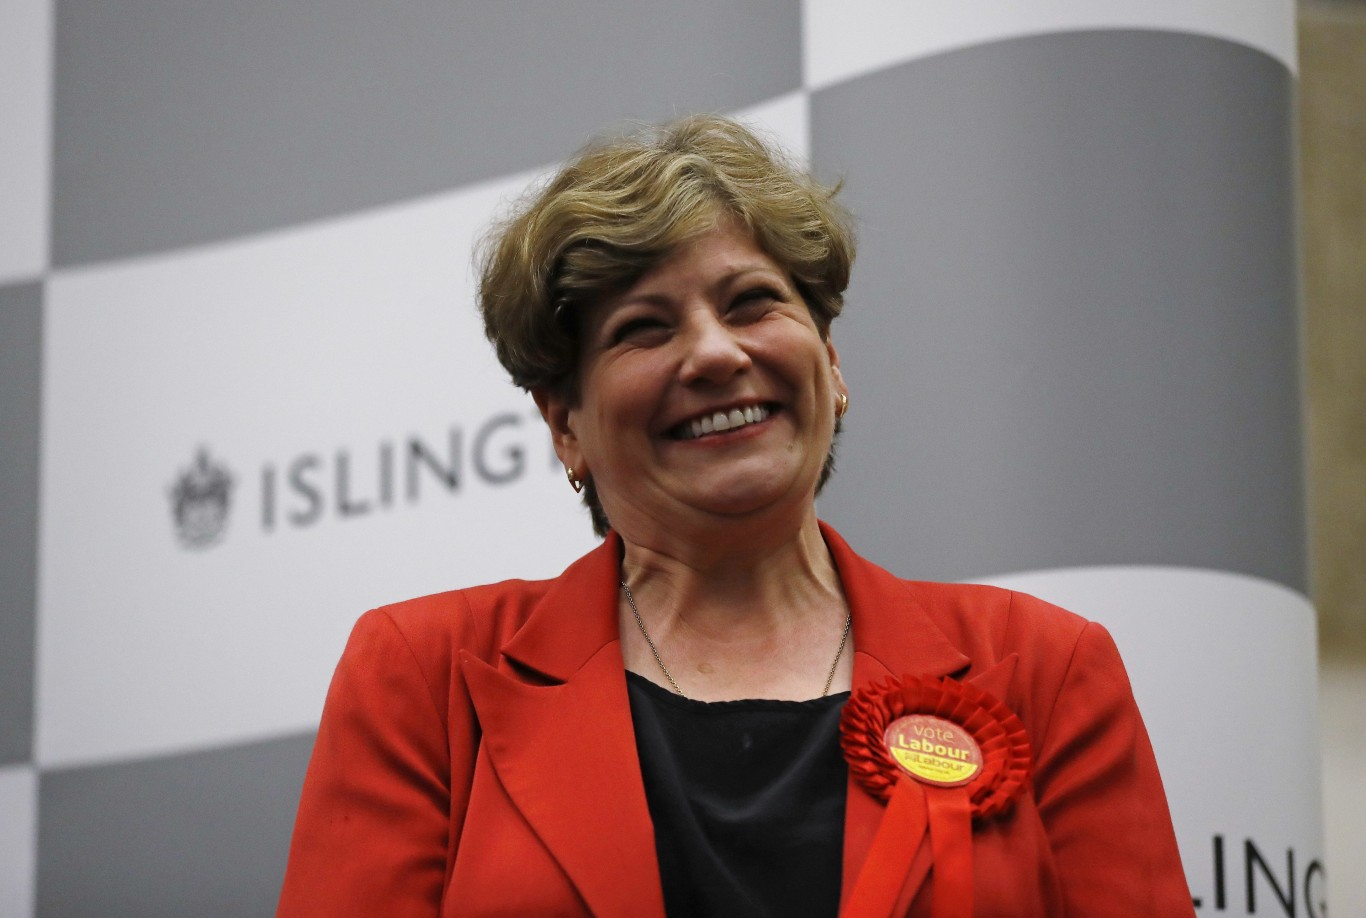 Labour's Emily Thornberry smiles after she retained her seat in the General Election